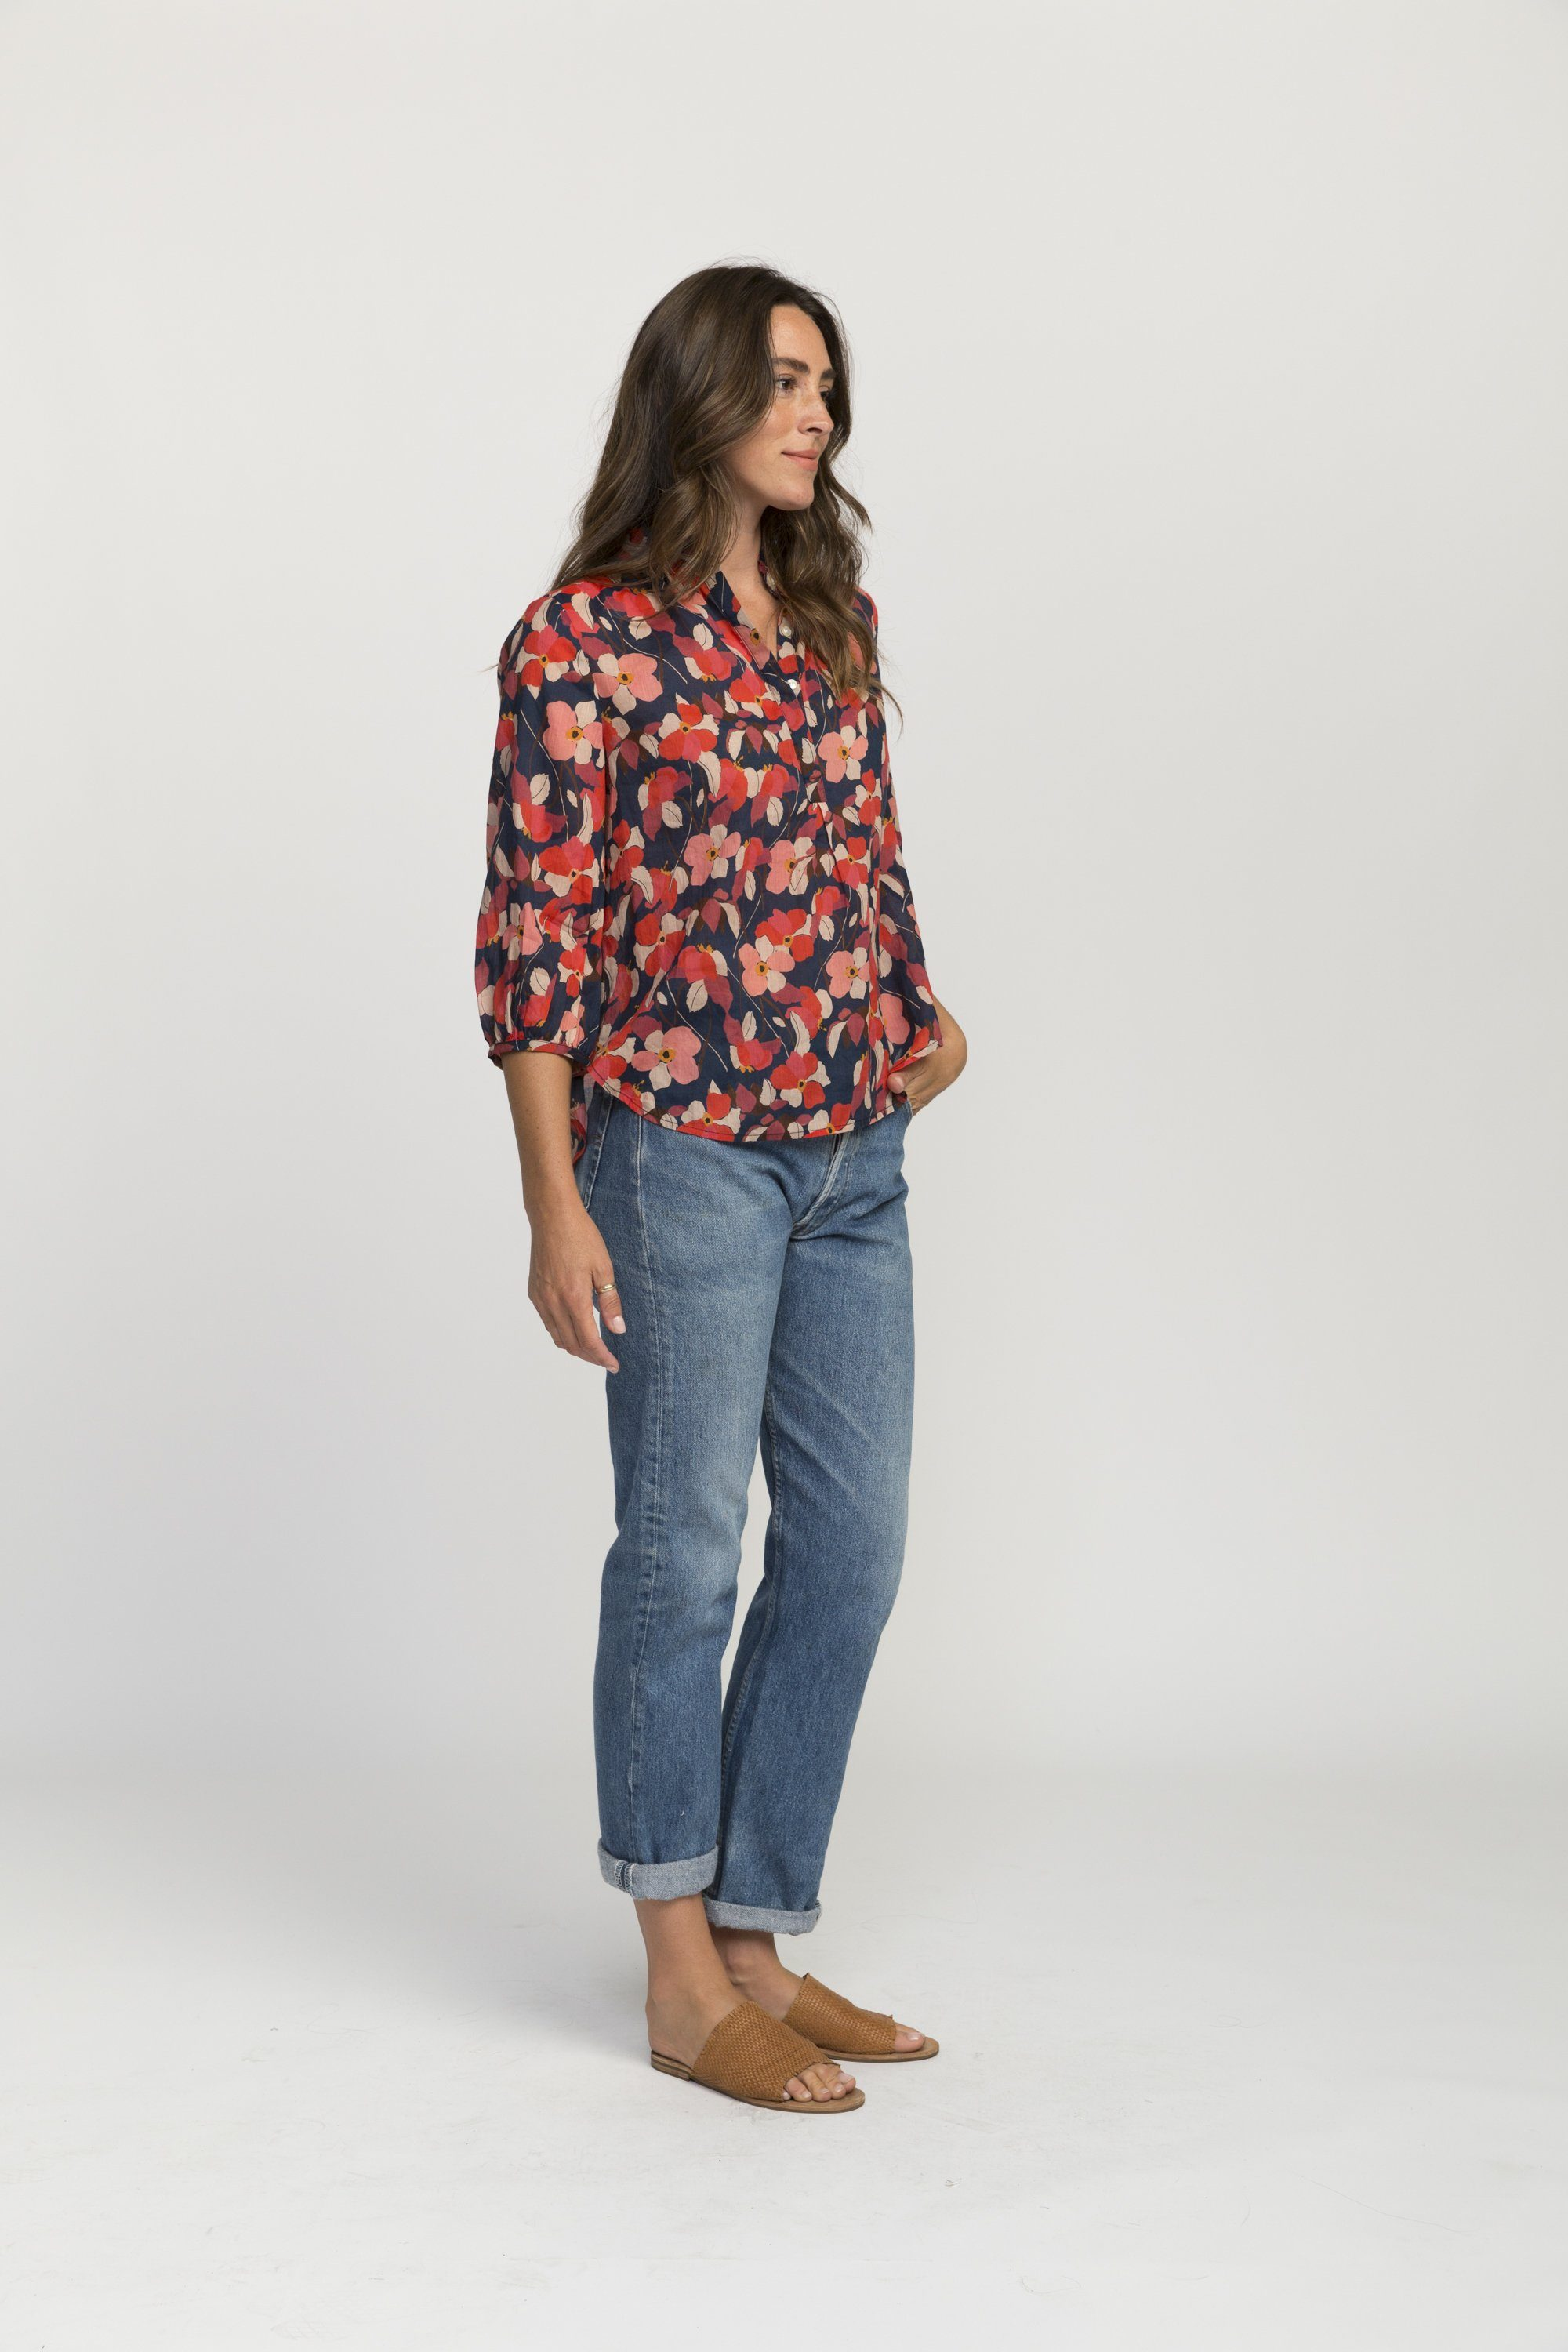 Sara henley shirt NAVY RED FLORAL by Trovata - 4